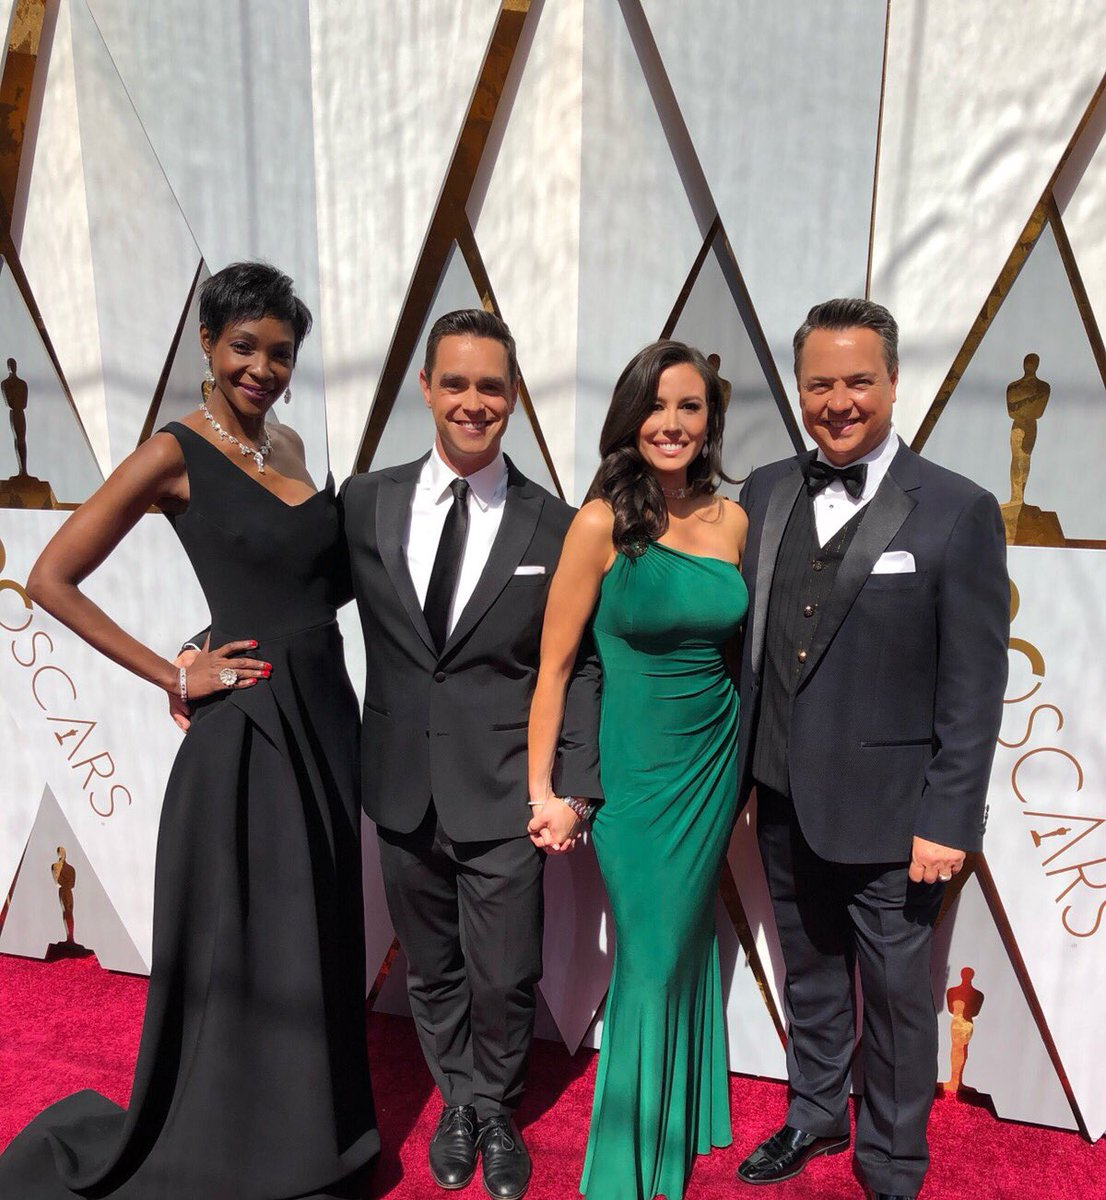 Oscars red carpet coverage home the honoroak - Oscars red carpet coverage ...